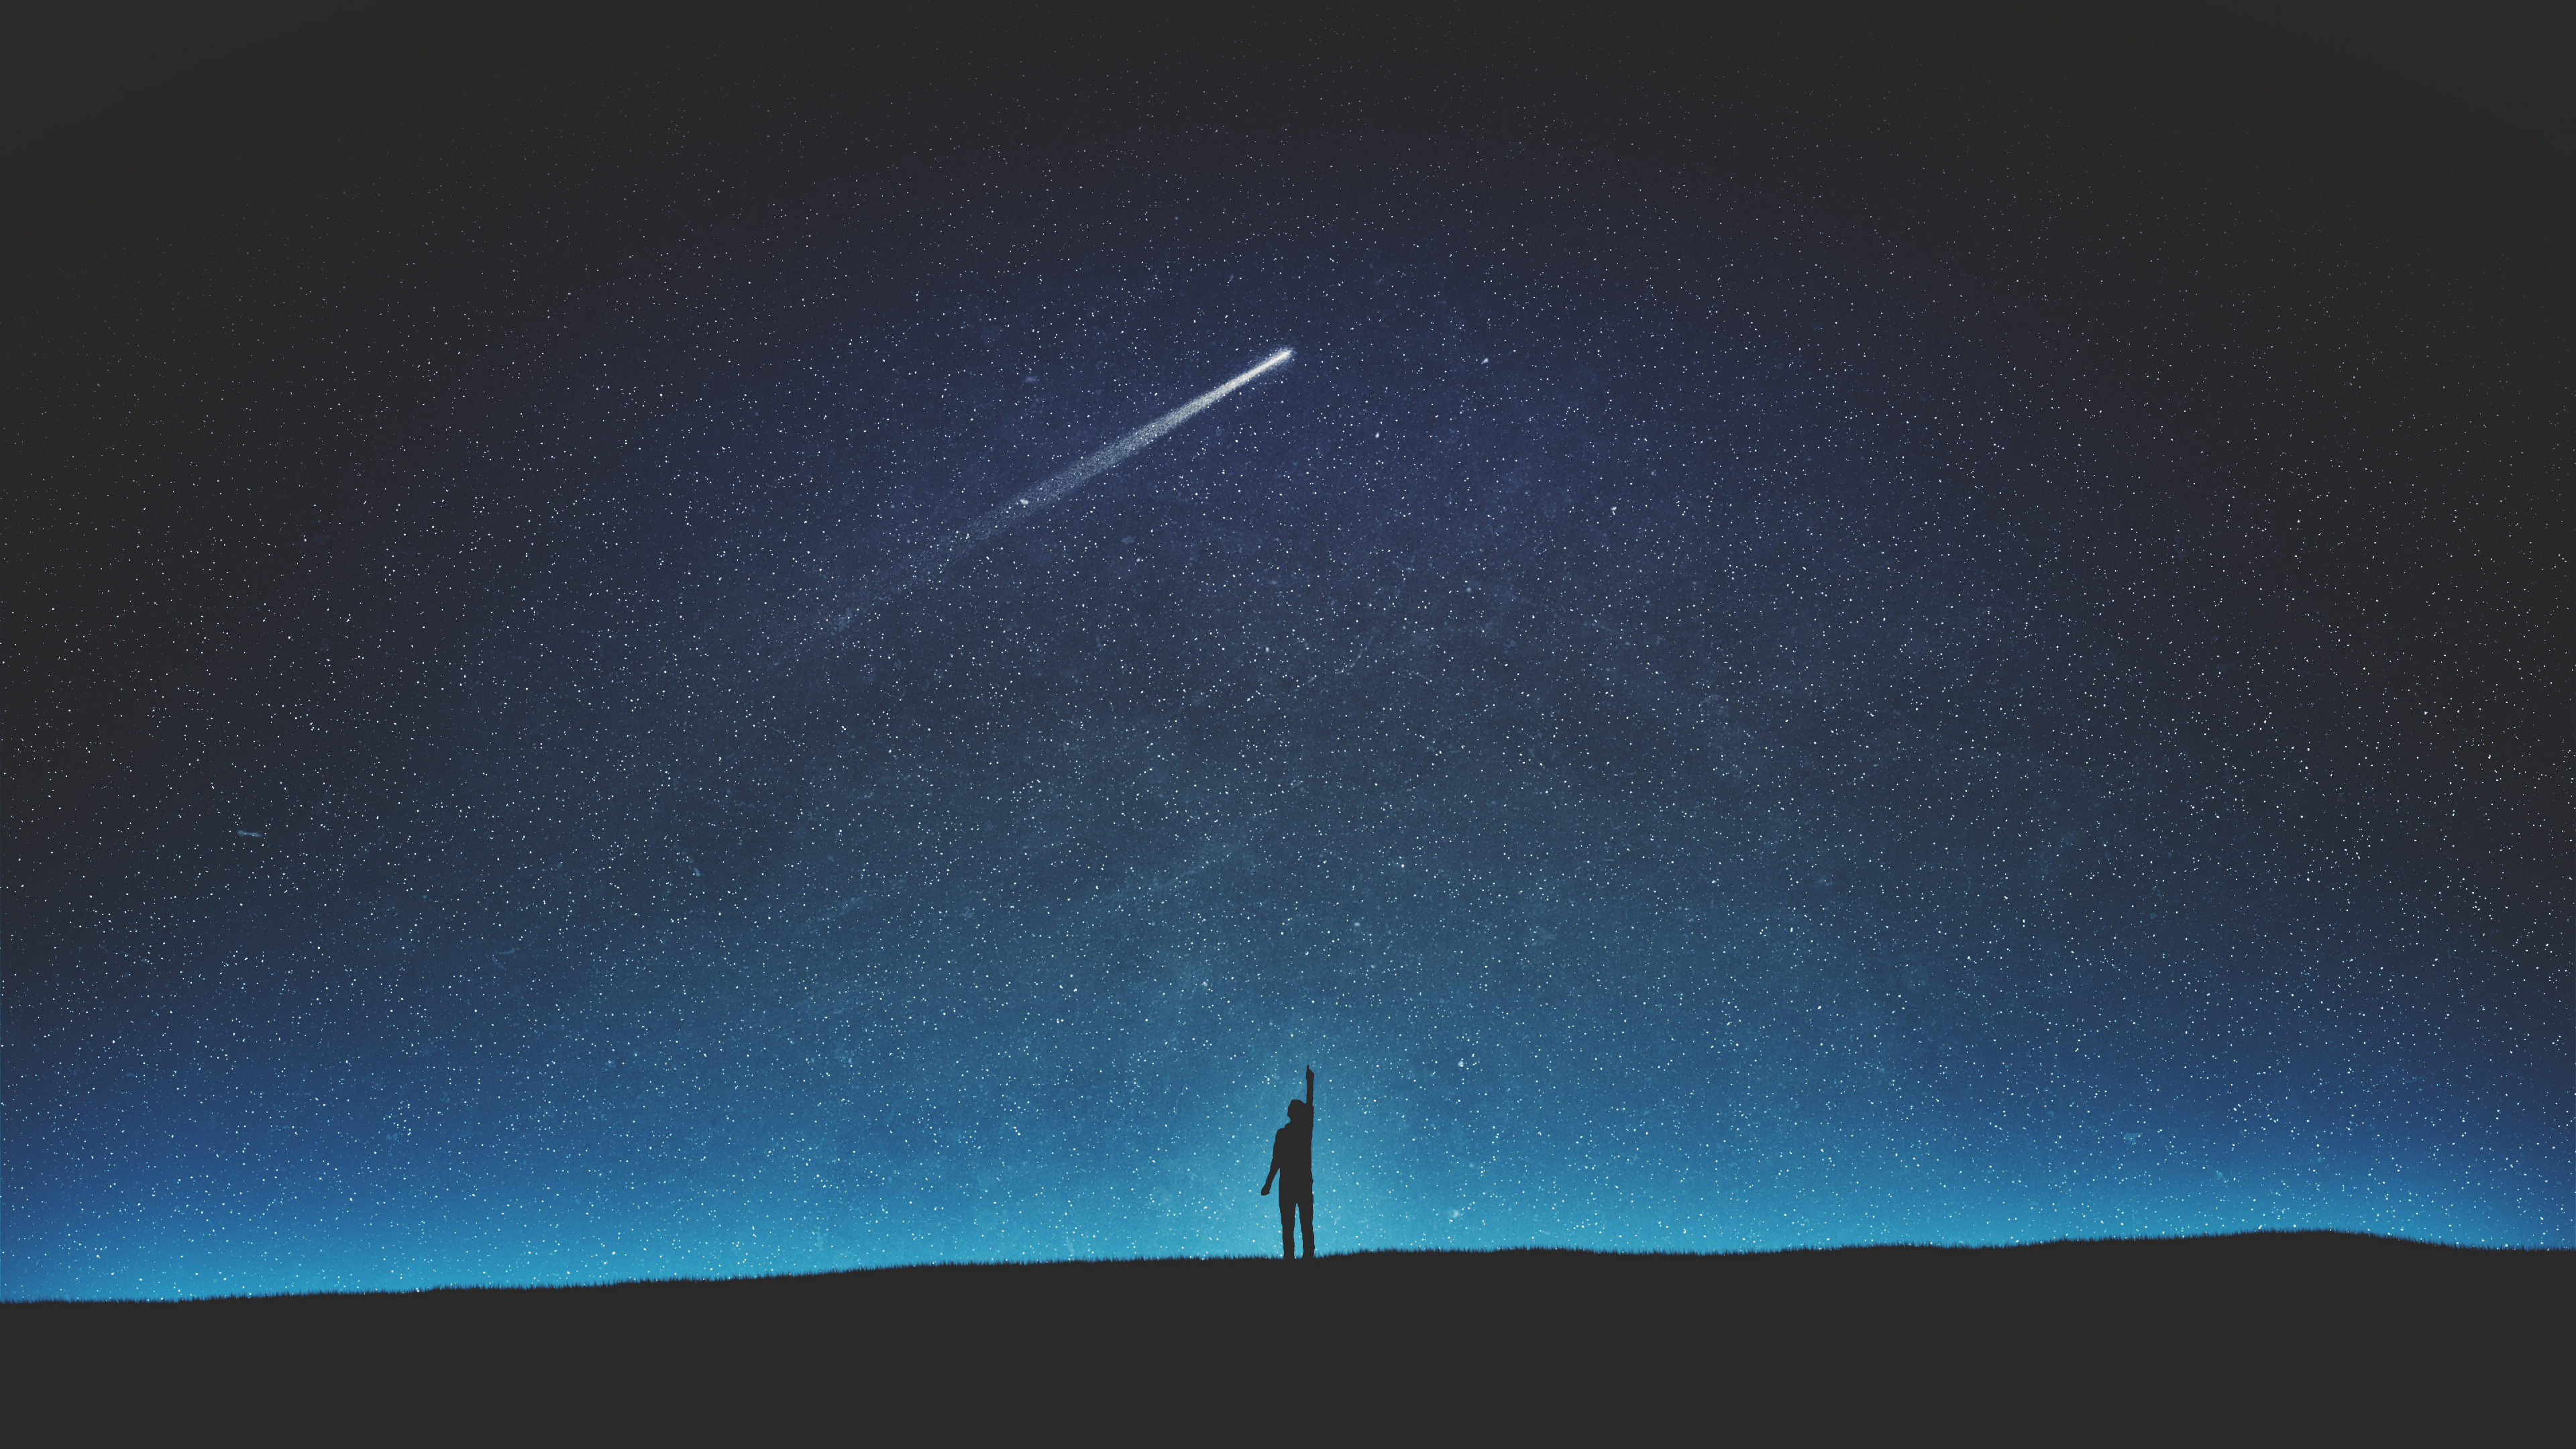 Falling From Stars Wallpaper Shooting Star Silhouette 4k Wallpapers Hd Wallpapers